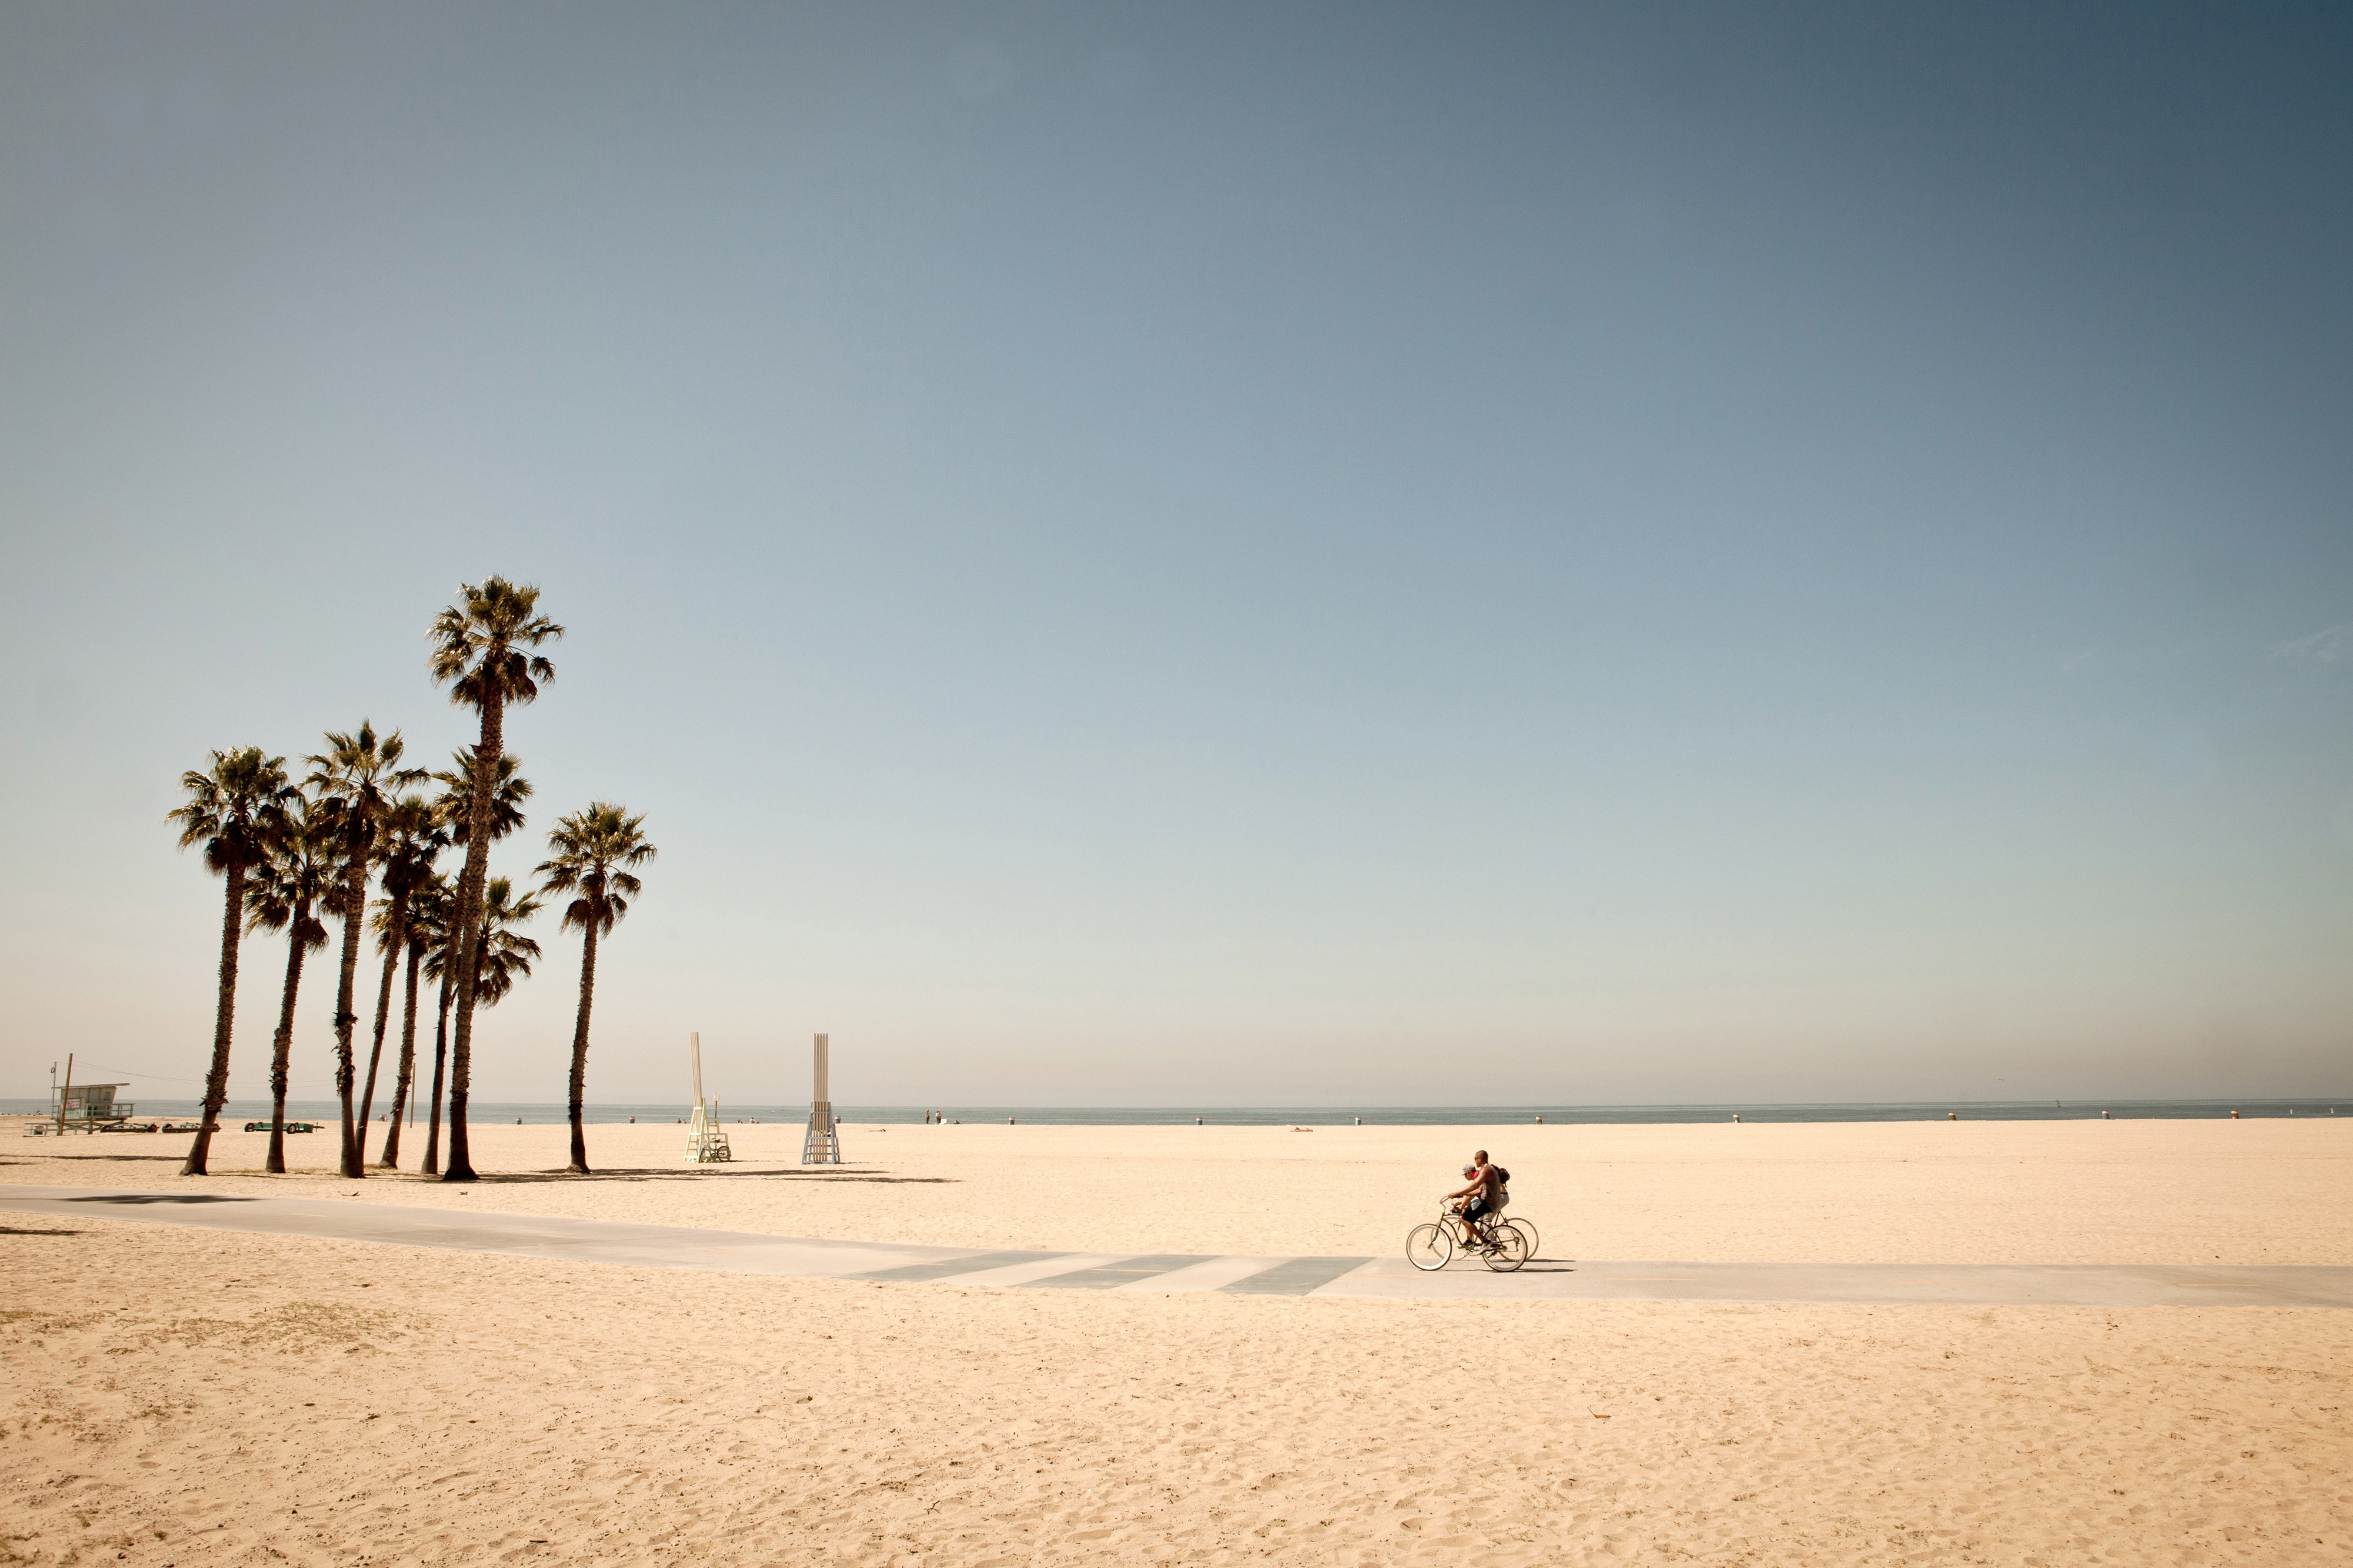 Venice Beach Venice   Sports Outdoors Review   Cond Nast Traveler 4000x2666